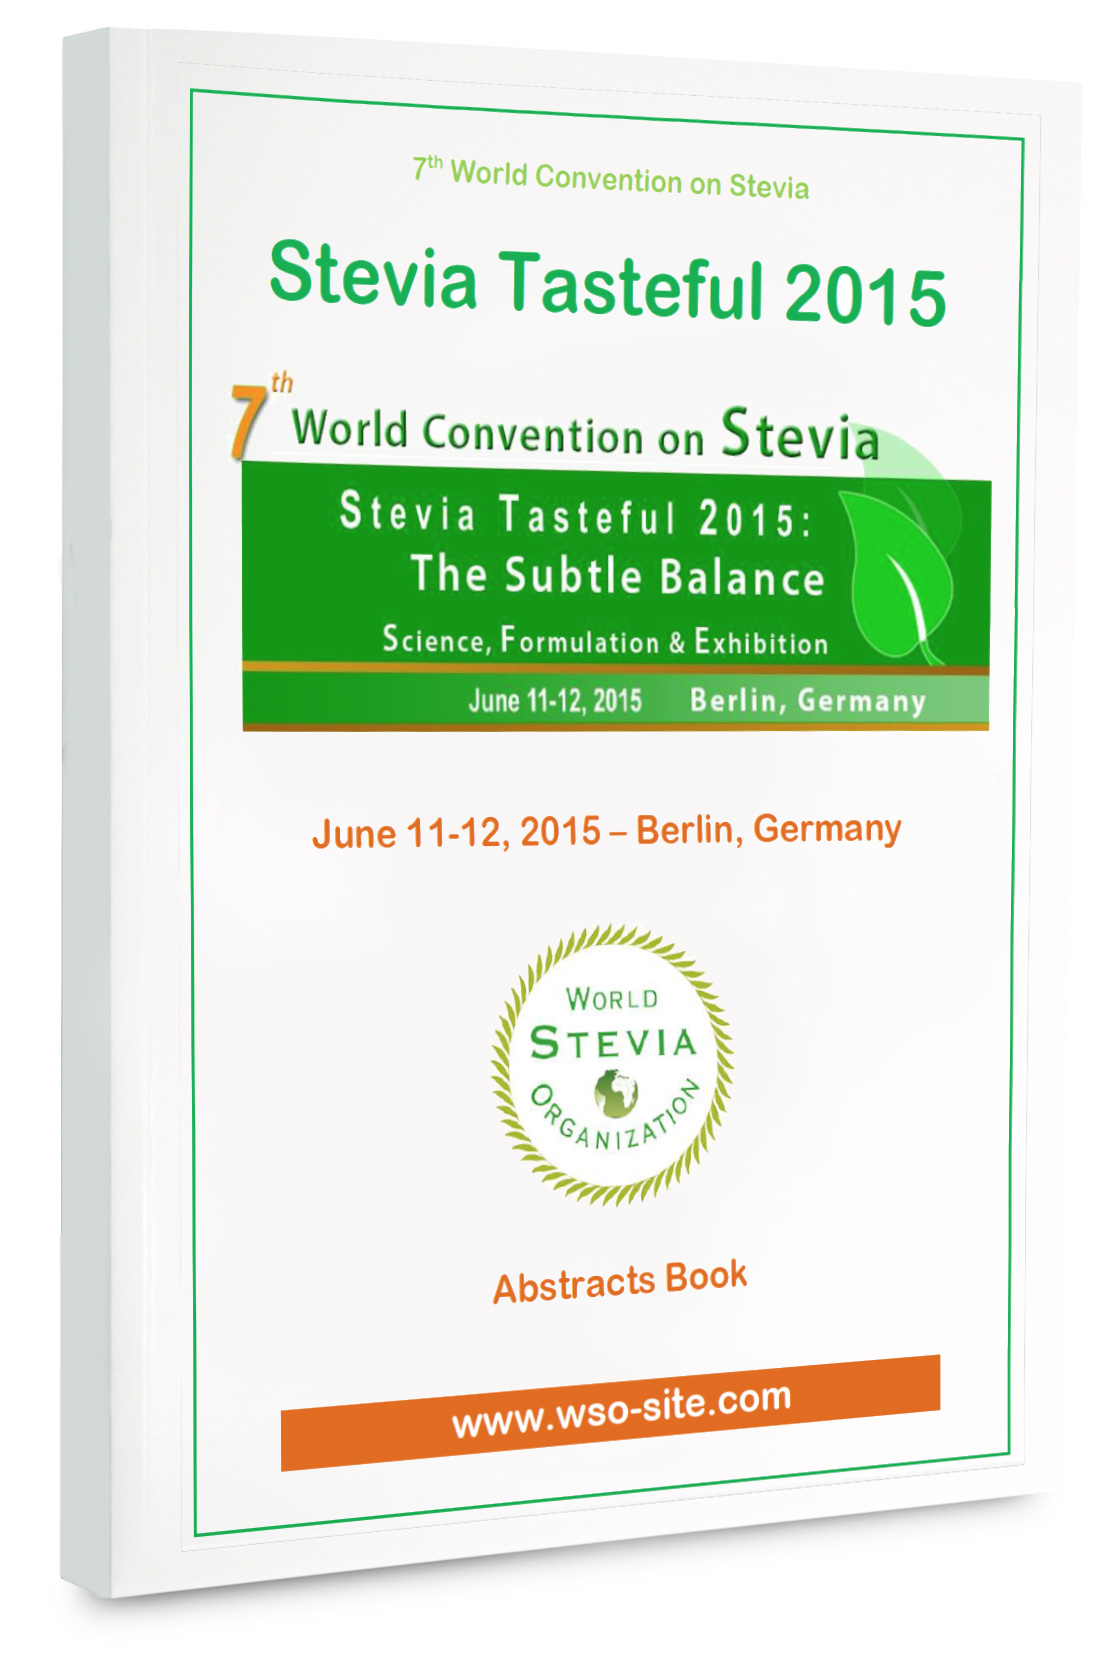 Stevia Tasteful 2015 : The abstracts book is available